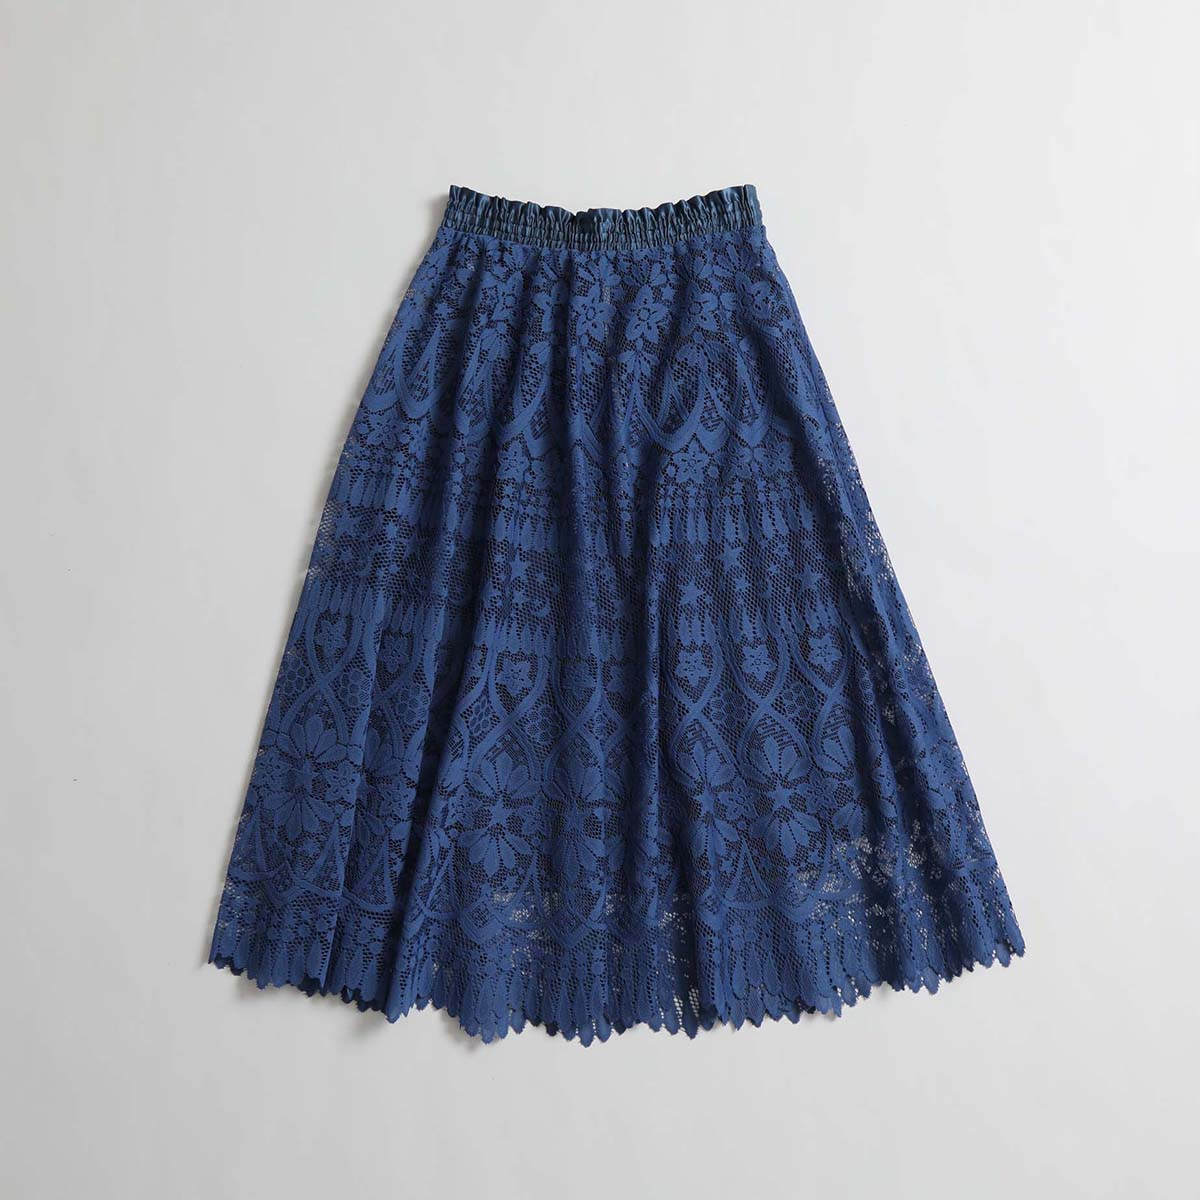 『HYERES LACE 』 Circular skirt BLUE×NAVY画像